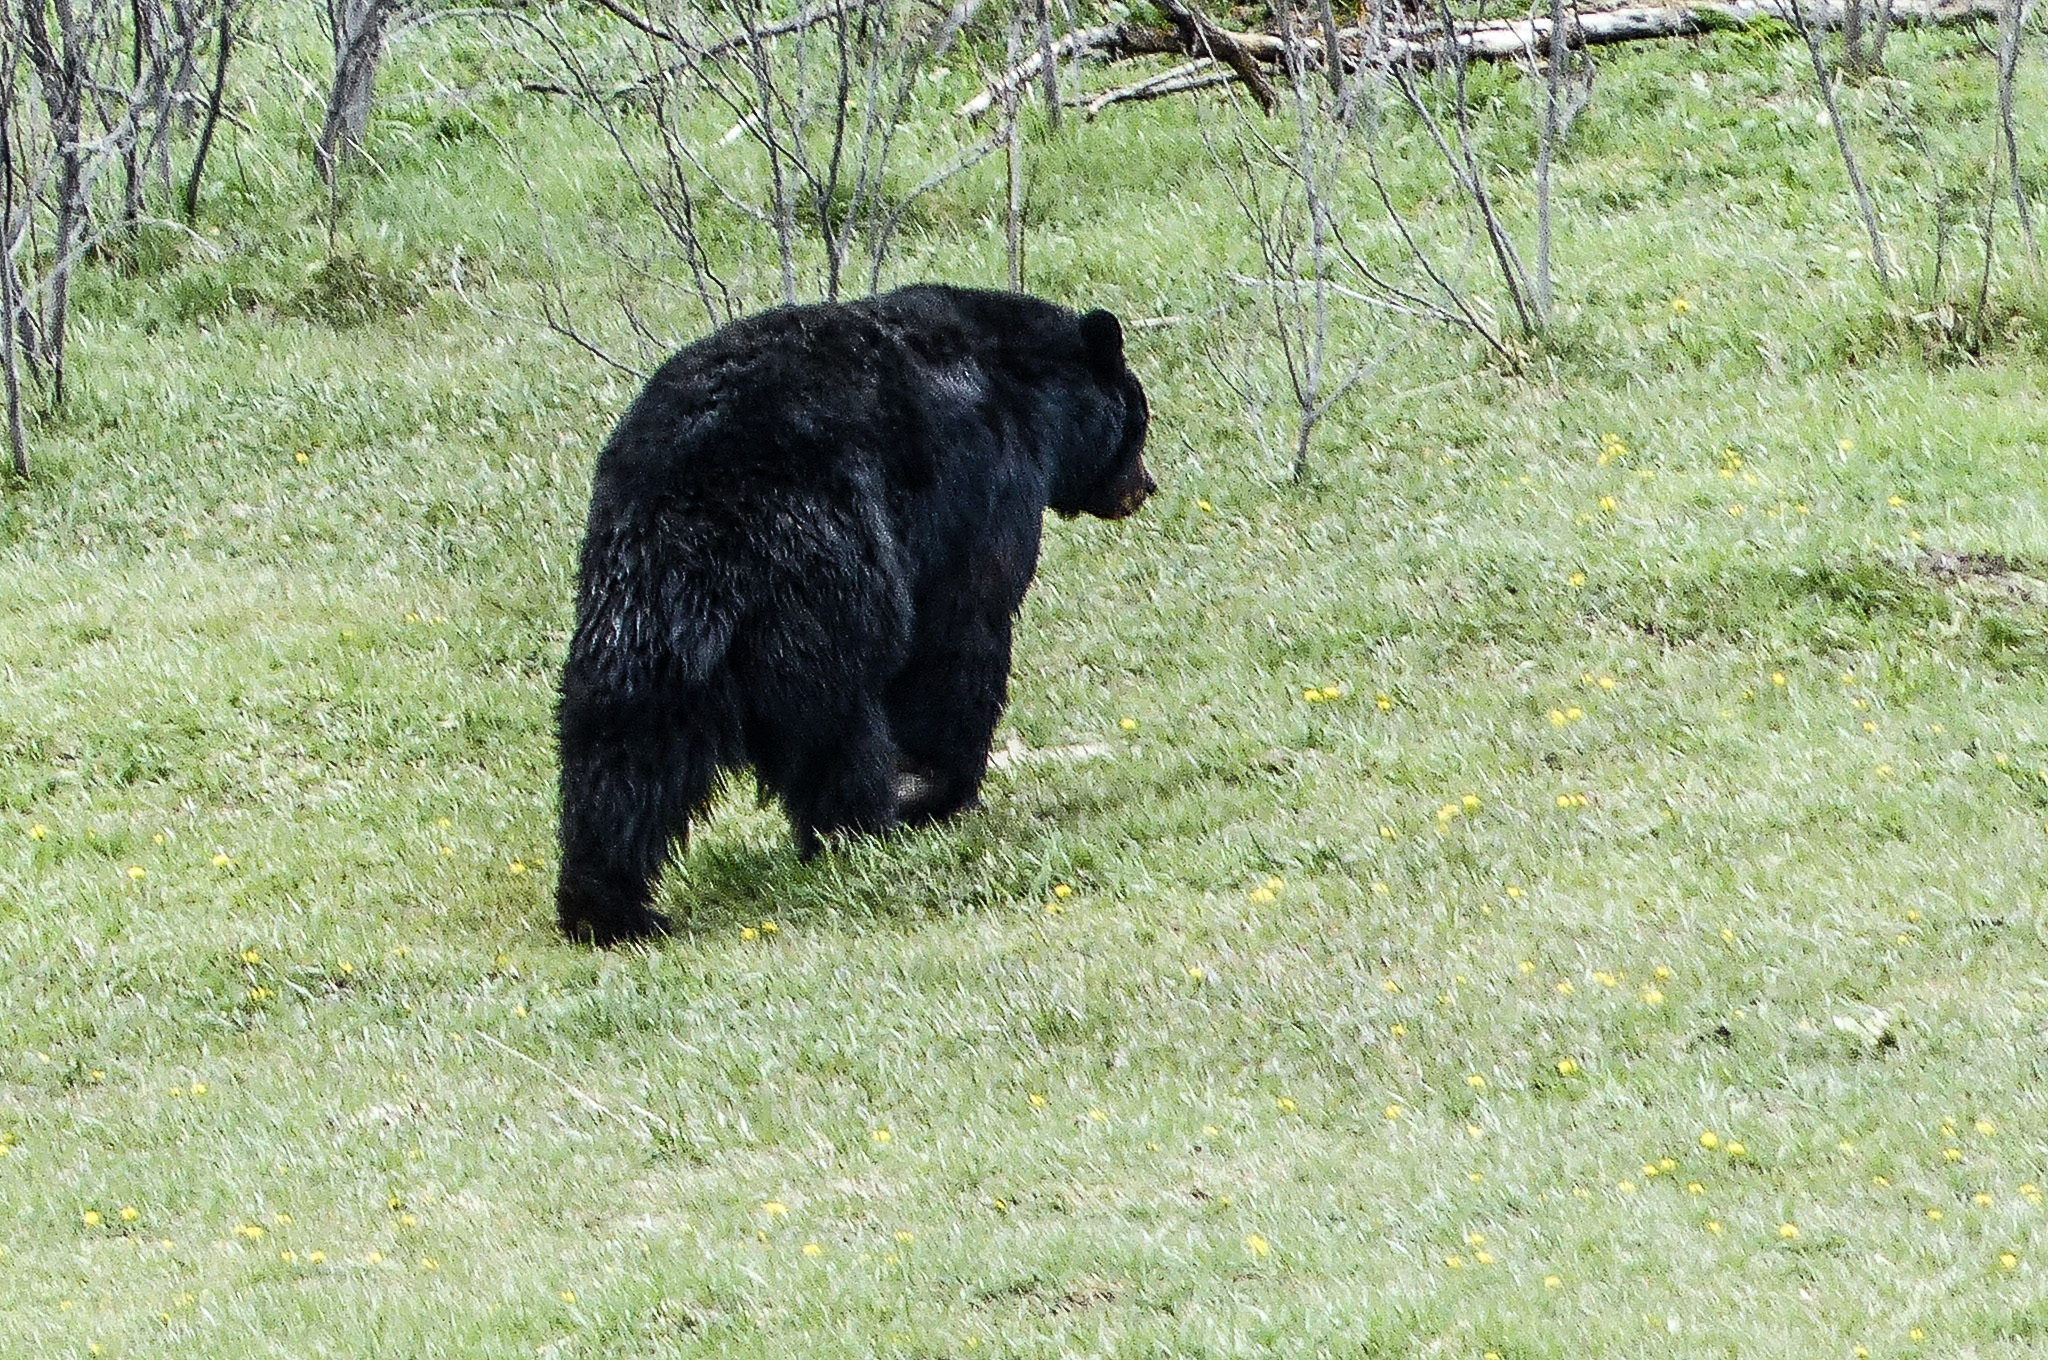 Black bear walking alog the edge of a meadow